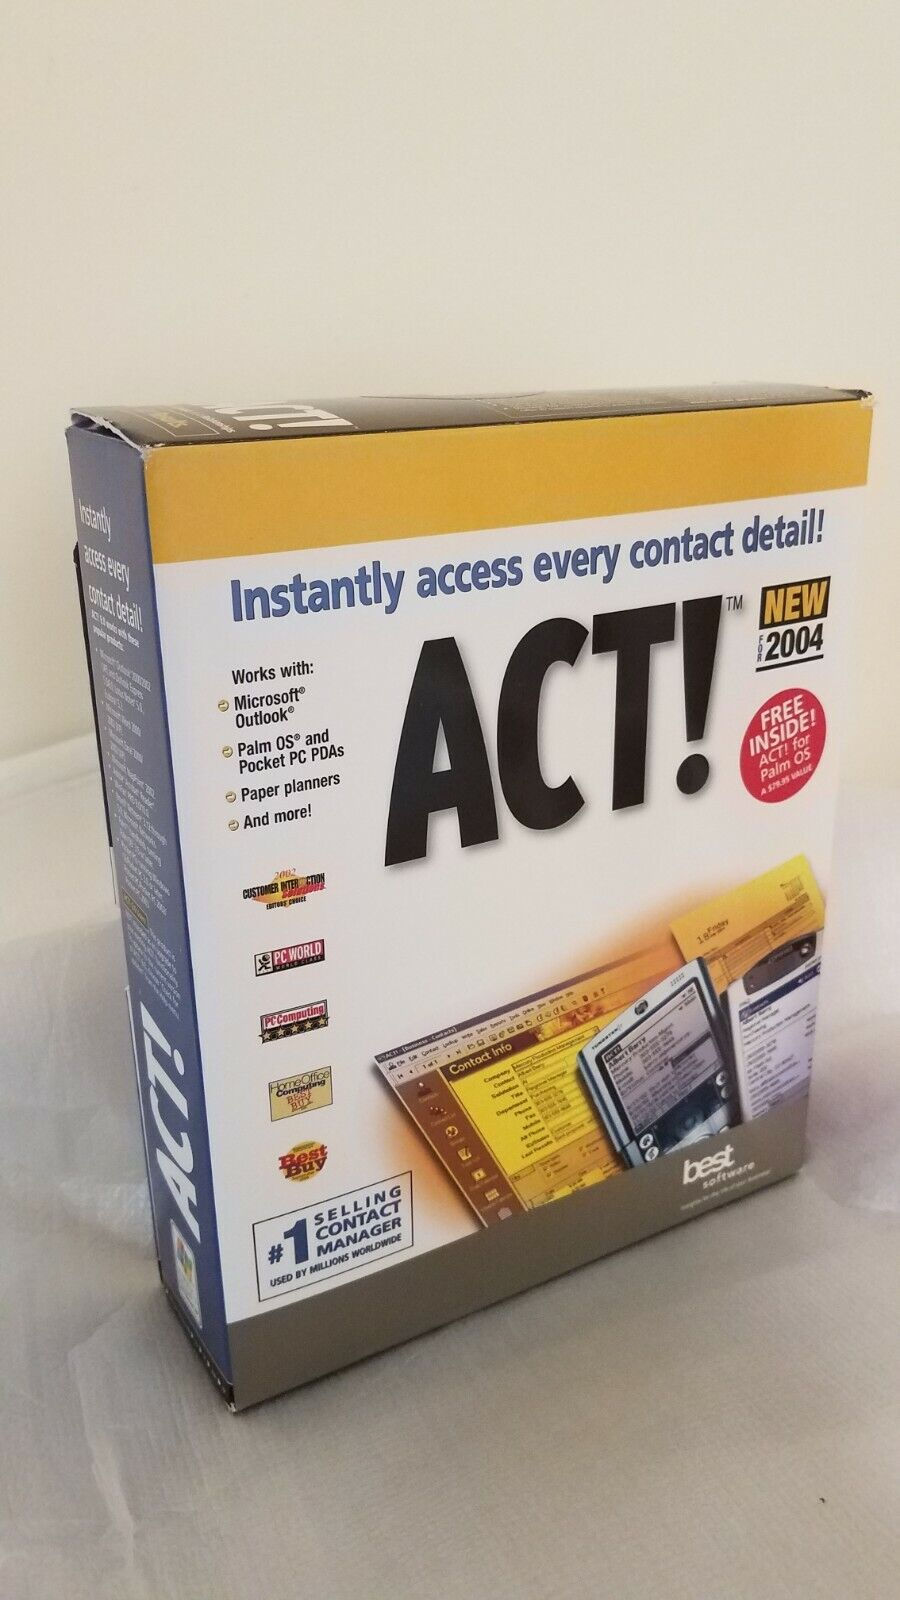 Act! 6.0 Contact Manager Software Retail Box (2004)